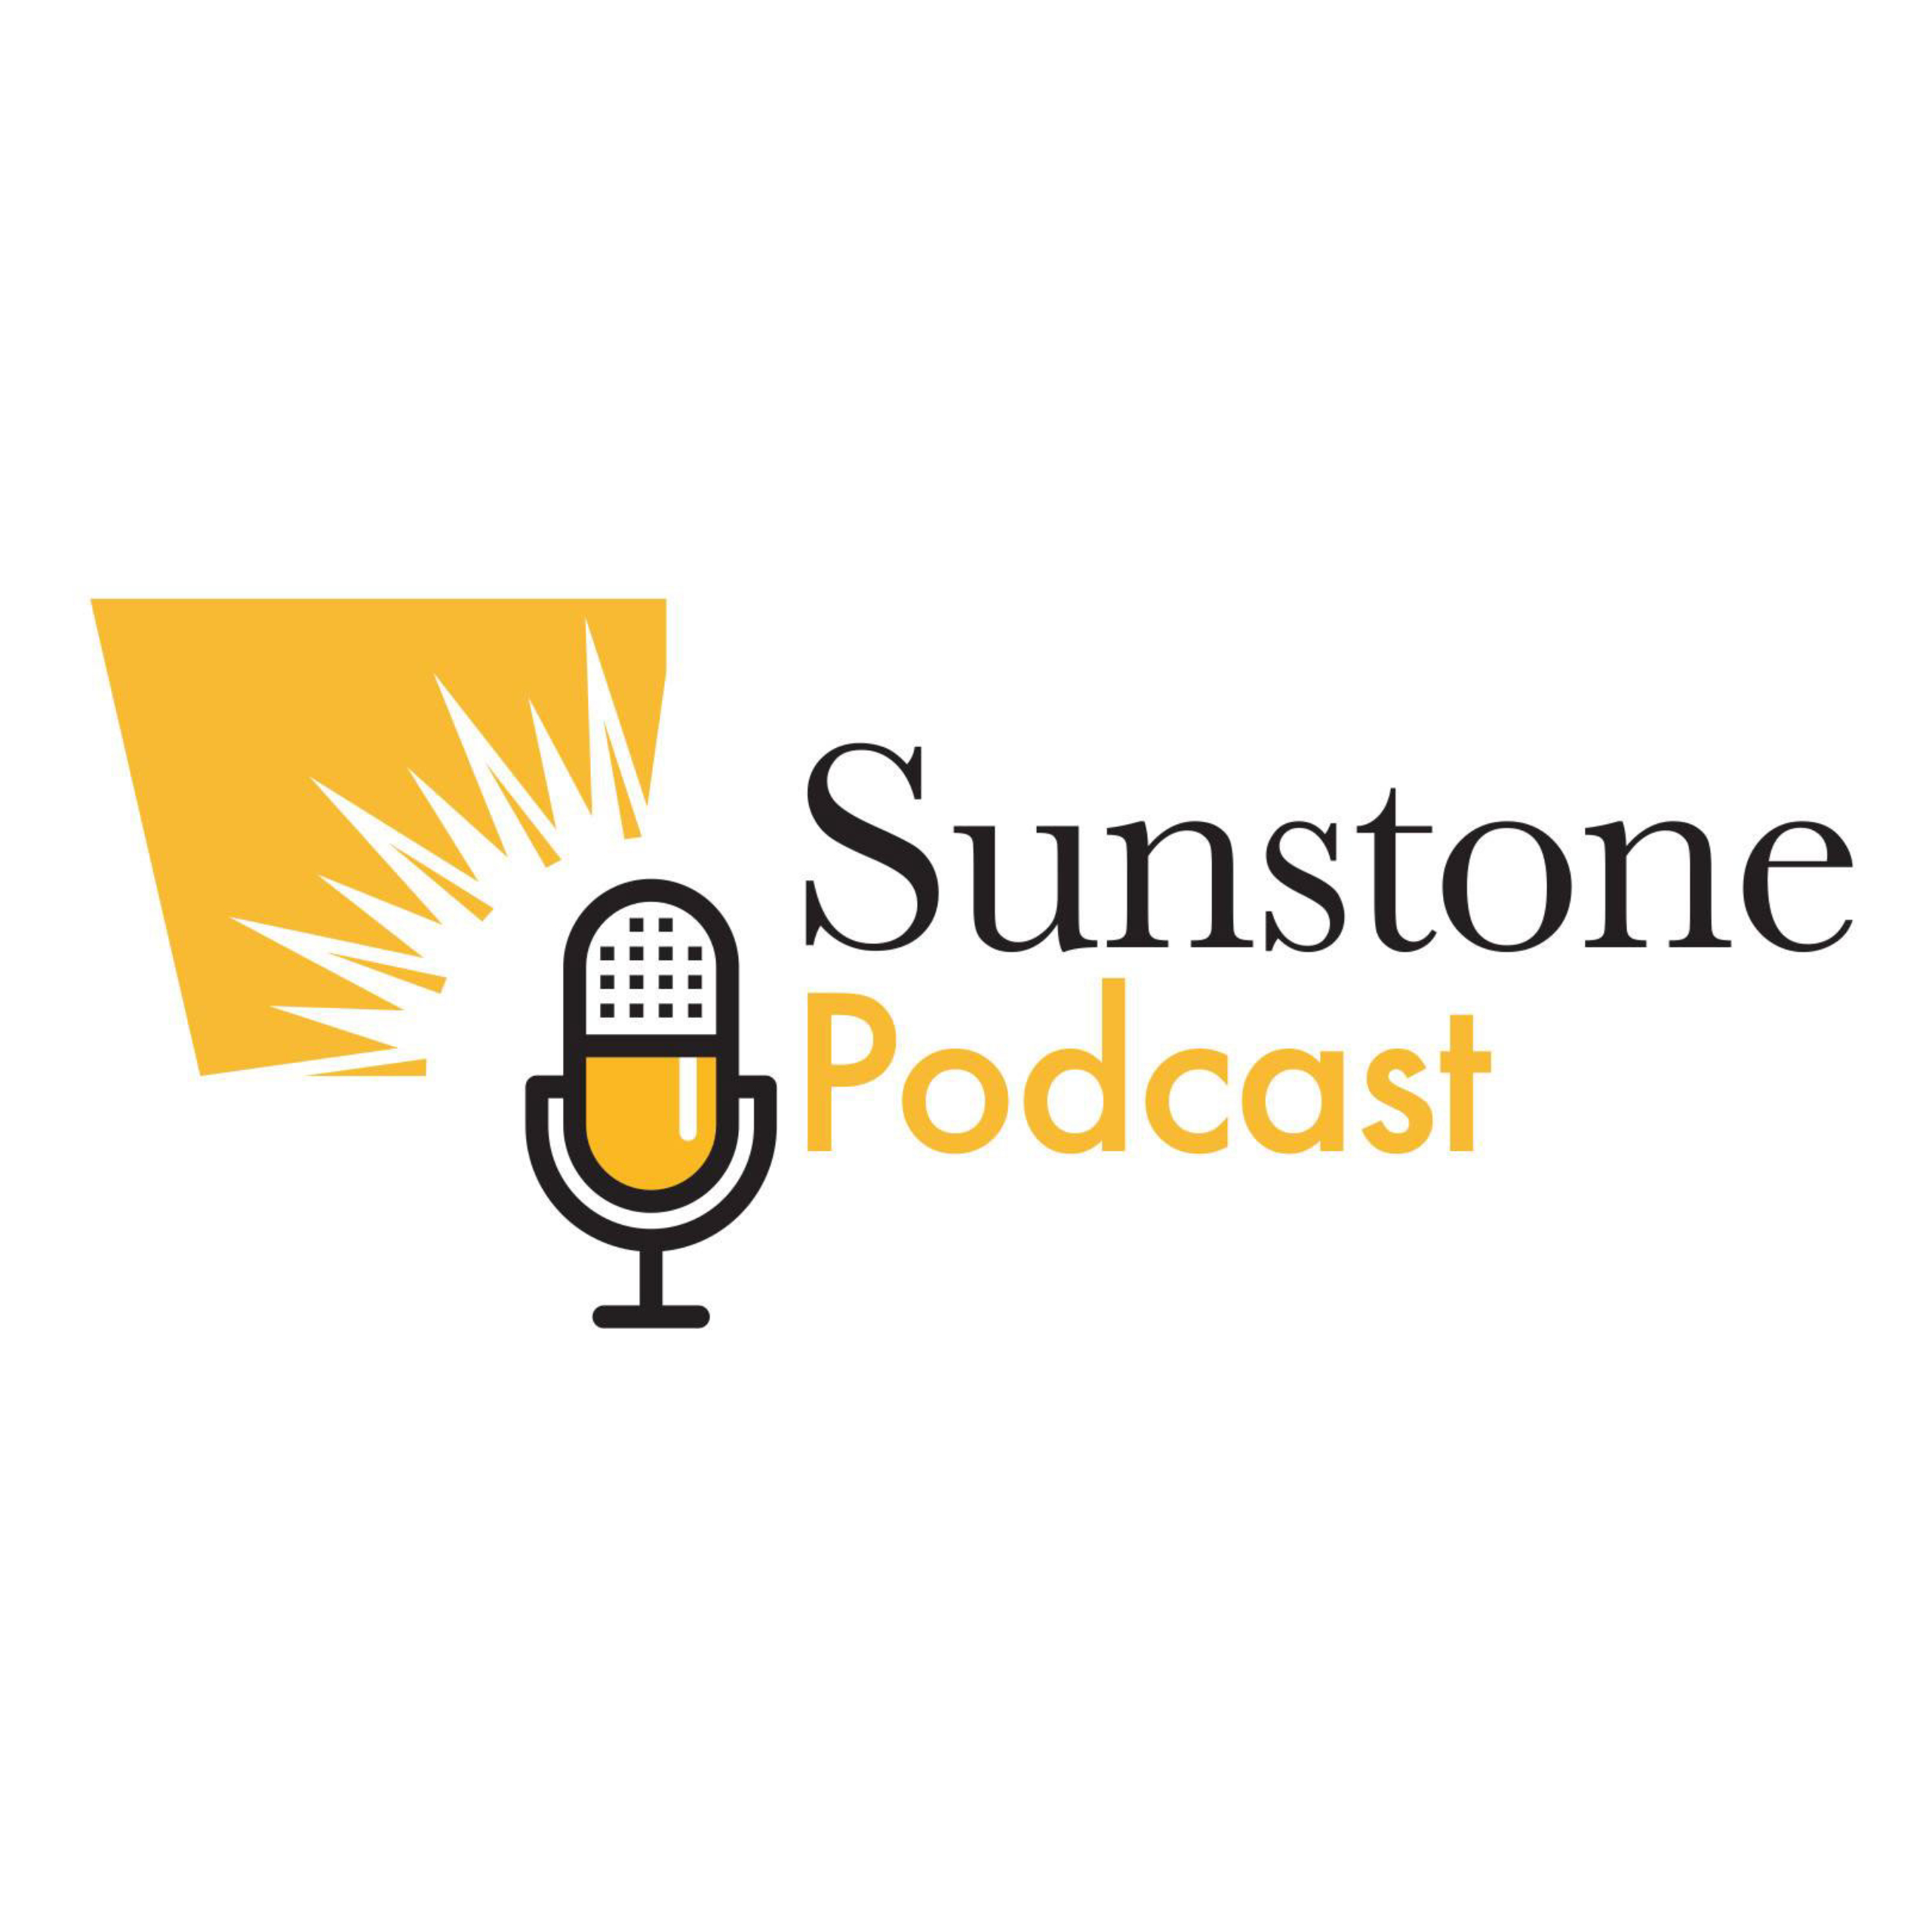 Sunstone Podcast